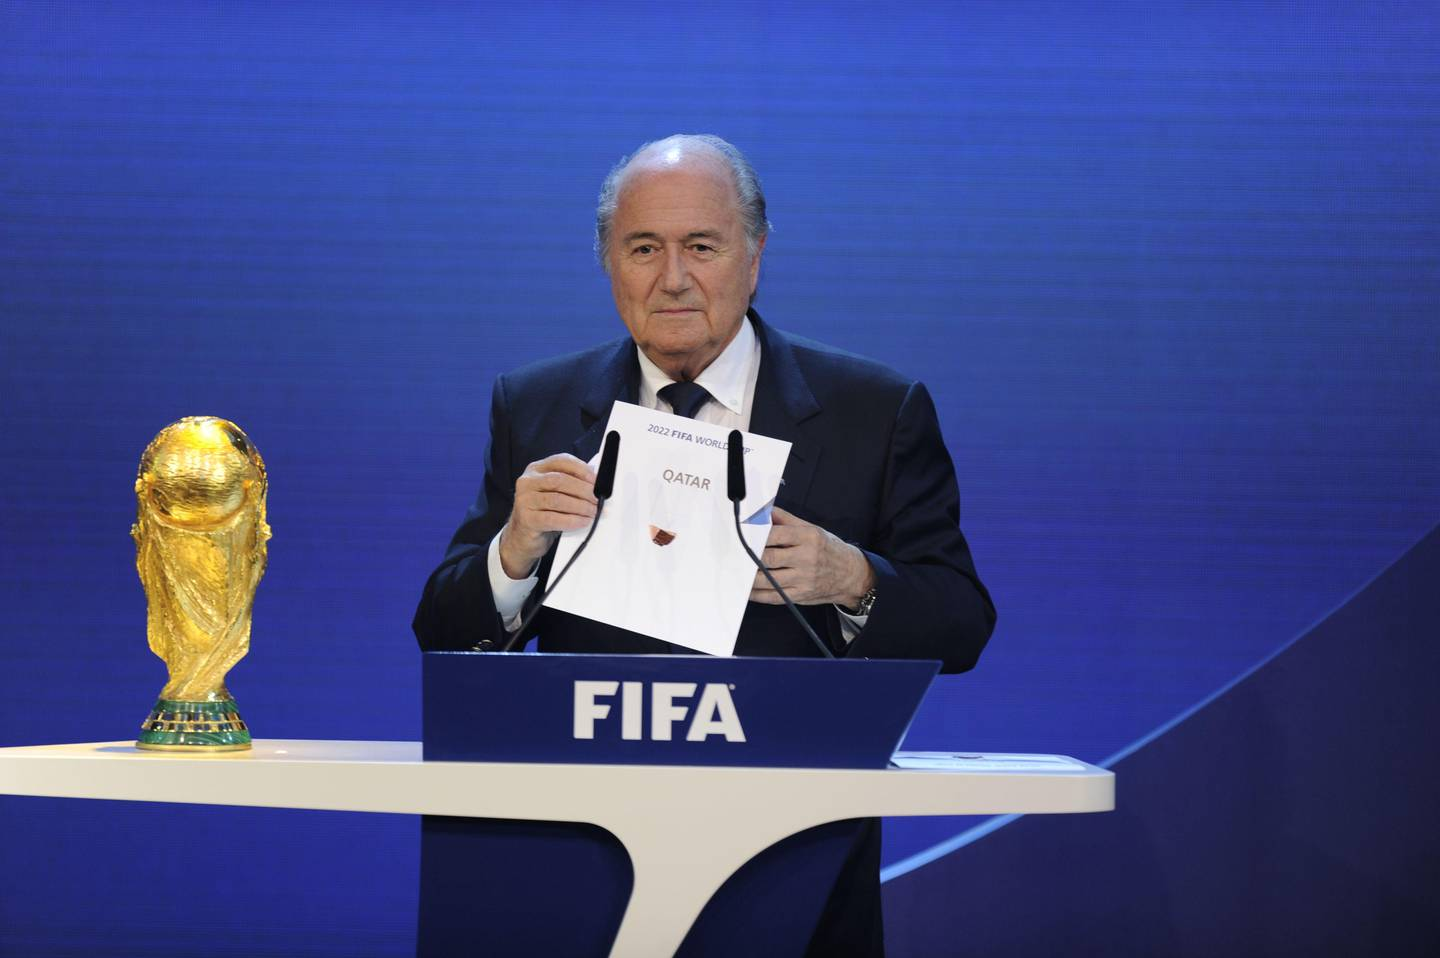 """(FILES) This file photo taken on December 02, 2010 shows FIFA President Sepp Blatter holding up the name of Qatar during the official announcement of the 2022 World Cup host country at the FIFA headquarters in Zurich. The opening this week of the glittering Louvre Abu Dhabi museum marks the latest stage in a multi-billion-dollar """"soft power"""" showdown between energy giants Qatar and the United Arab Emirates. Culture, media and sports have turned into battlegrounds for branding and global recognition.  / AFP PHOTO / Philippe DESMAZES"""